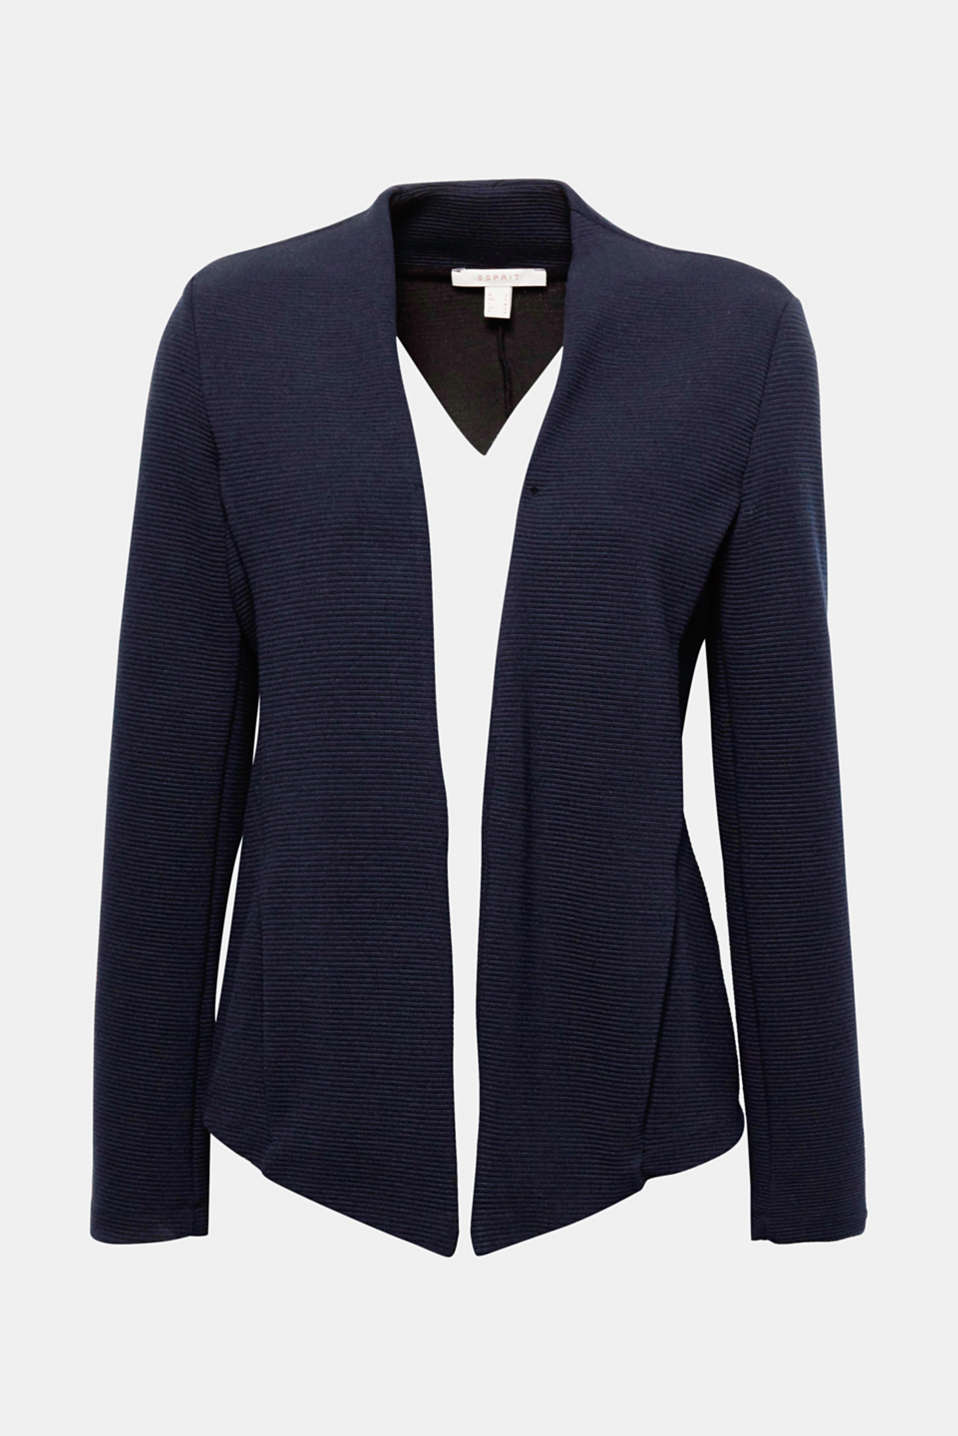 Whether sporty or casually elegant - this fitted jersey blazer wows with its sporty design.